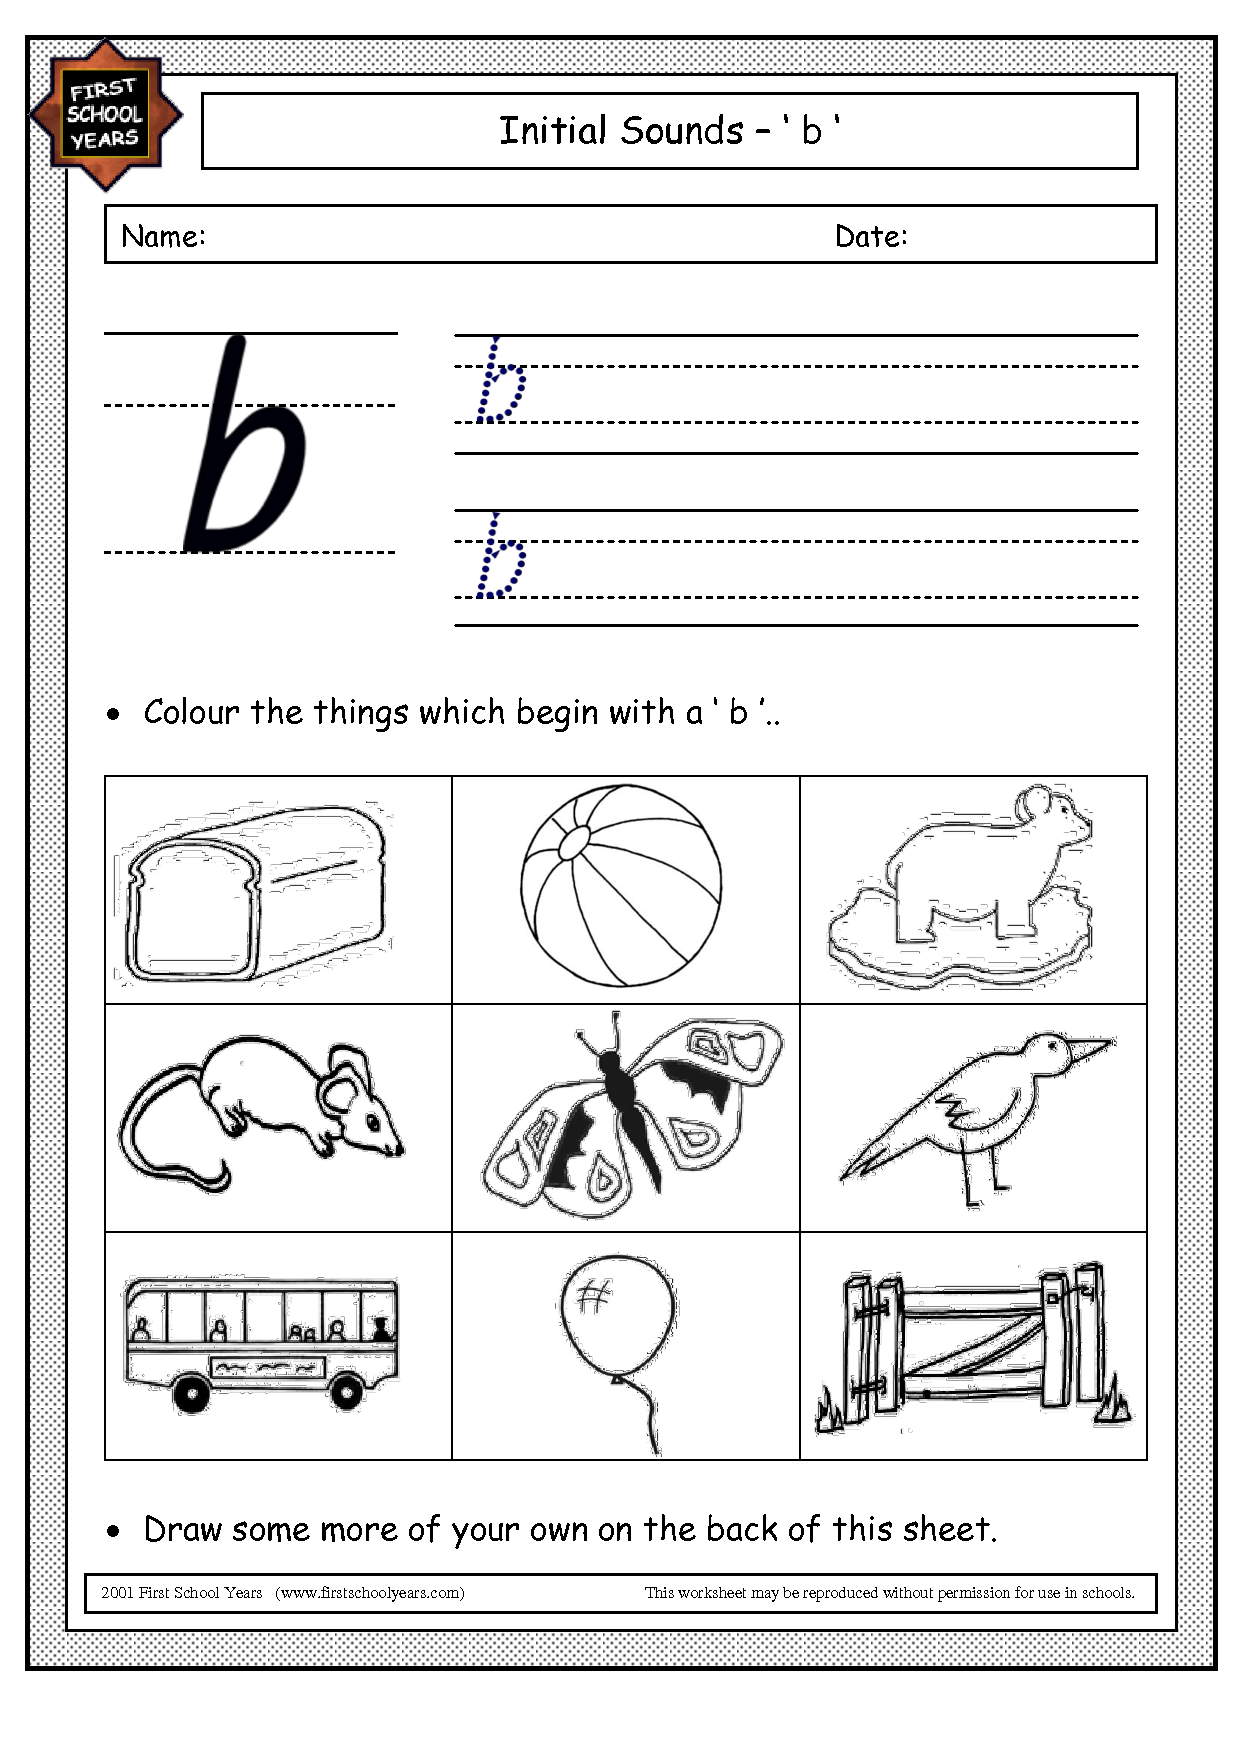 Final Sound Worksheet Letter B